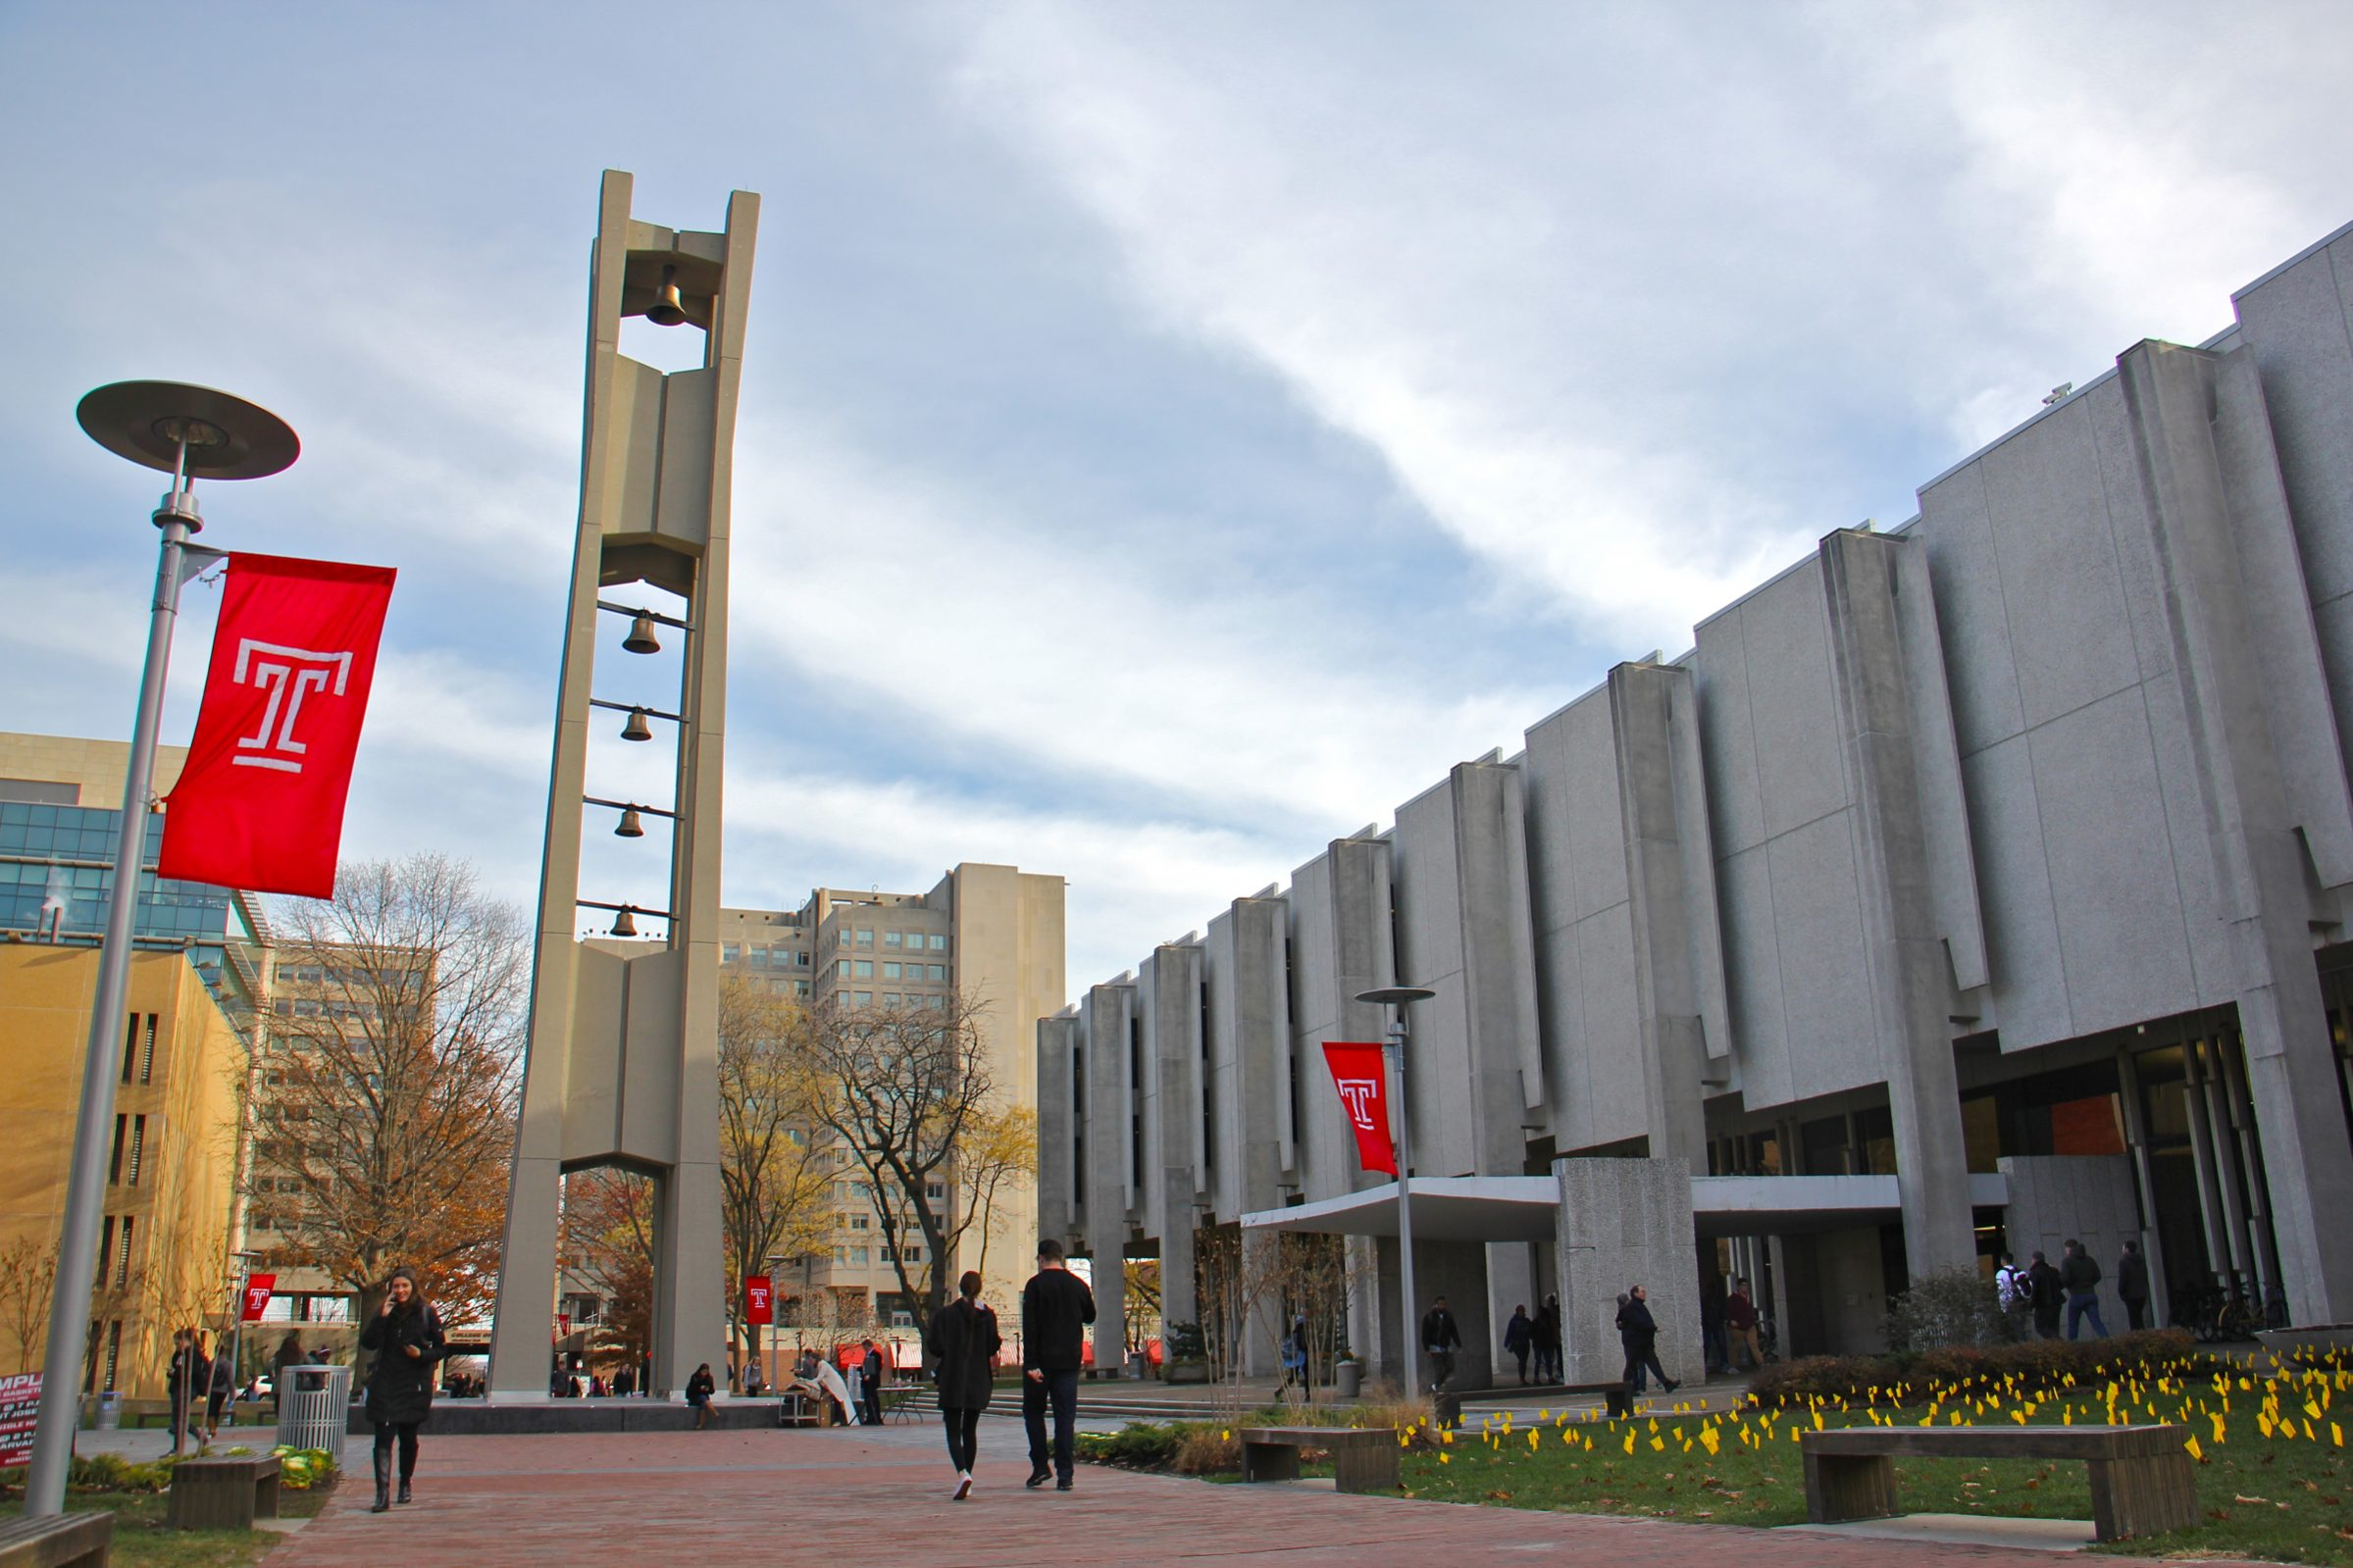 The Temple university quad which features a tall bell tower in the center and several buildings around the perimeter. Photo used courtesy of Temple University.